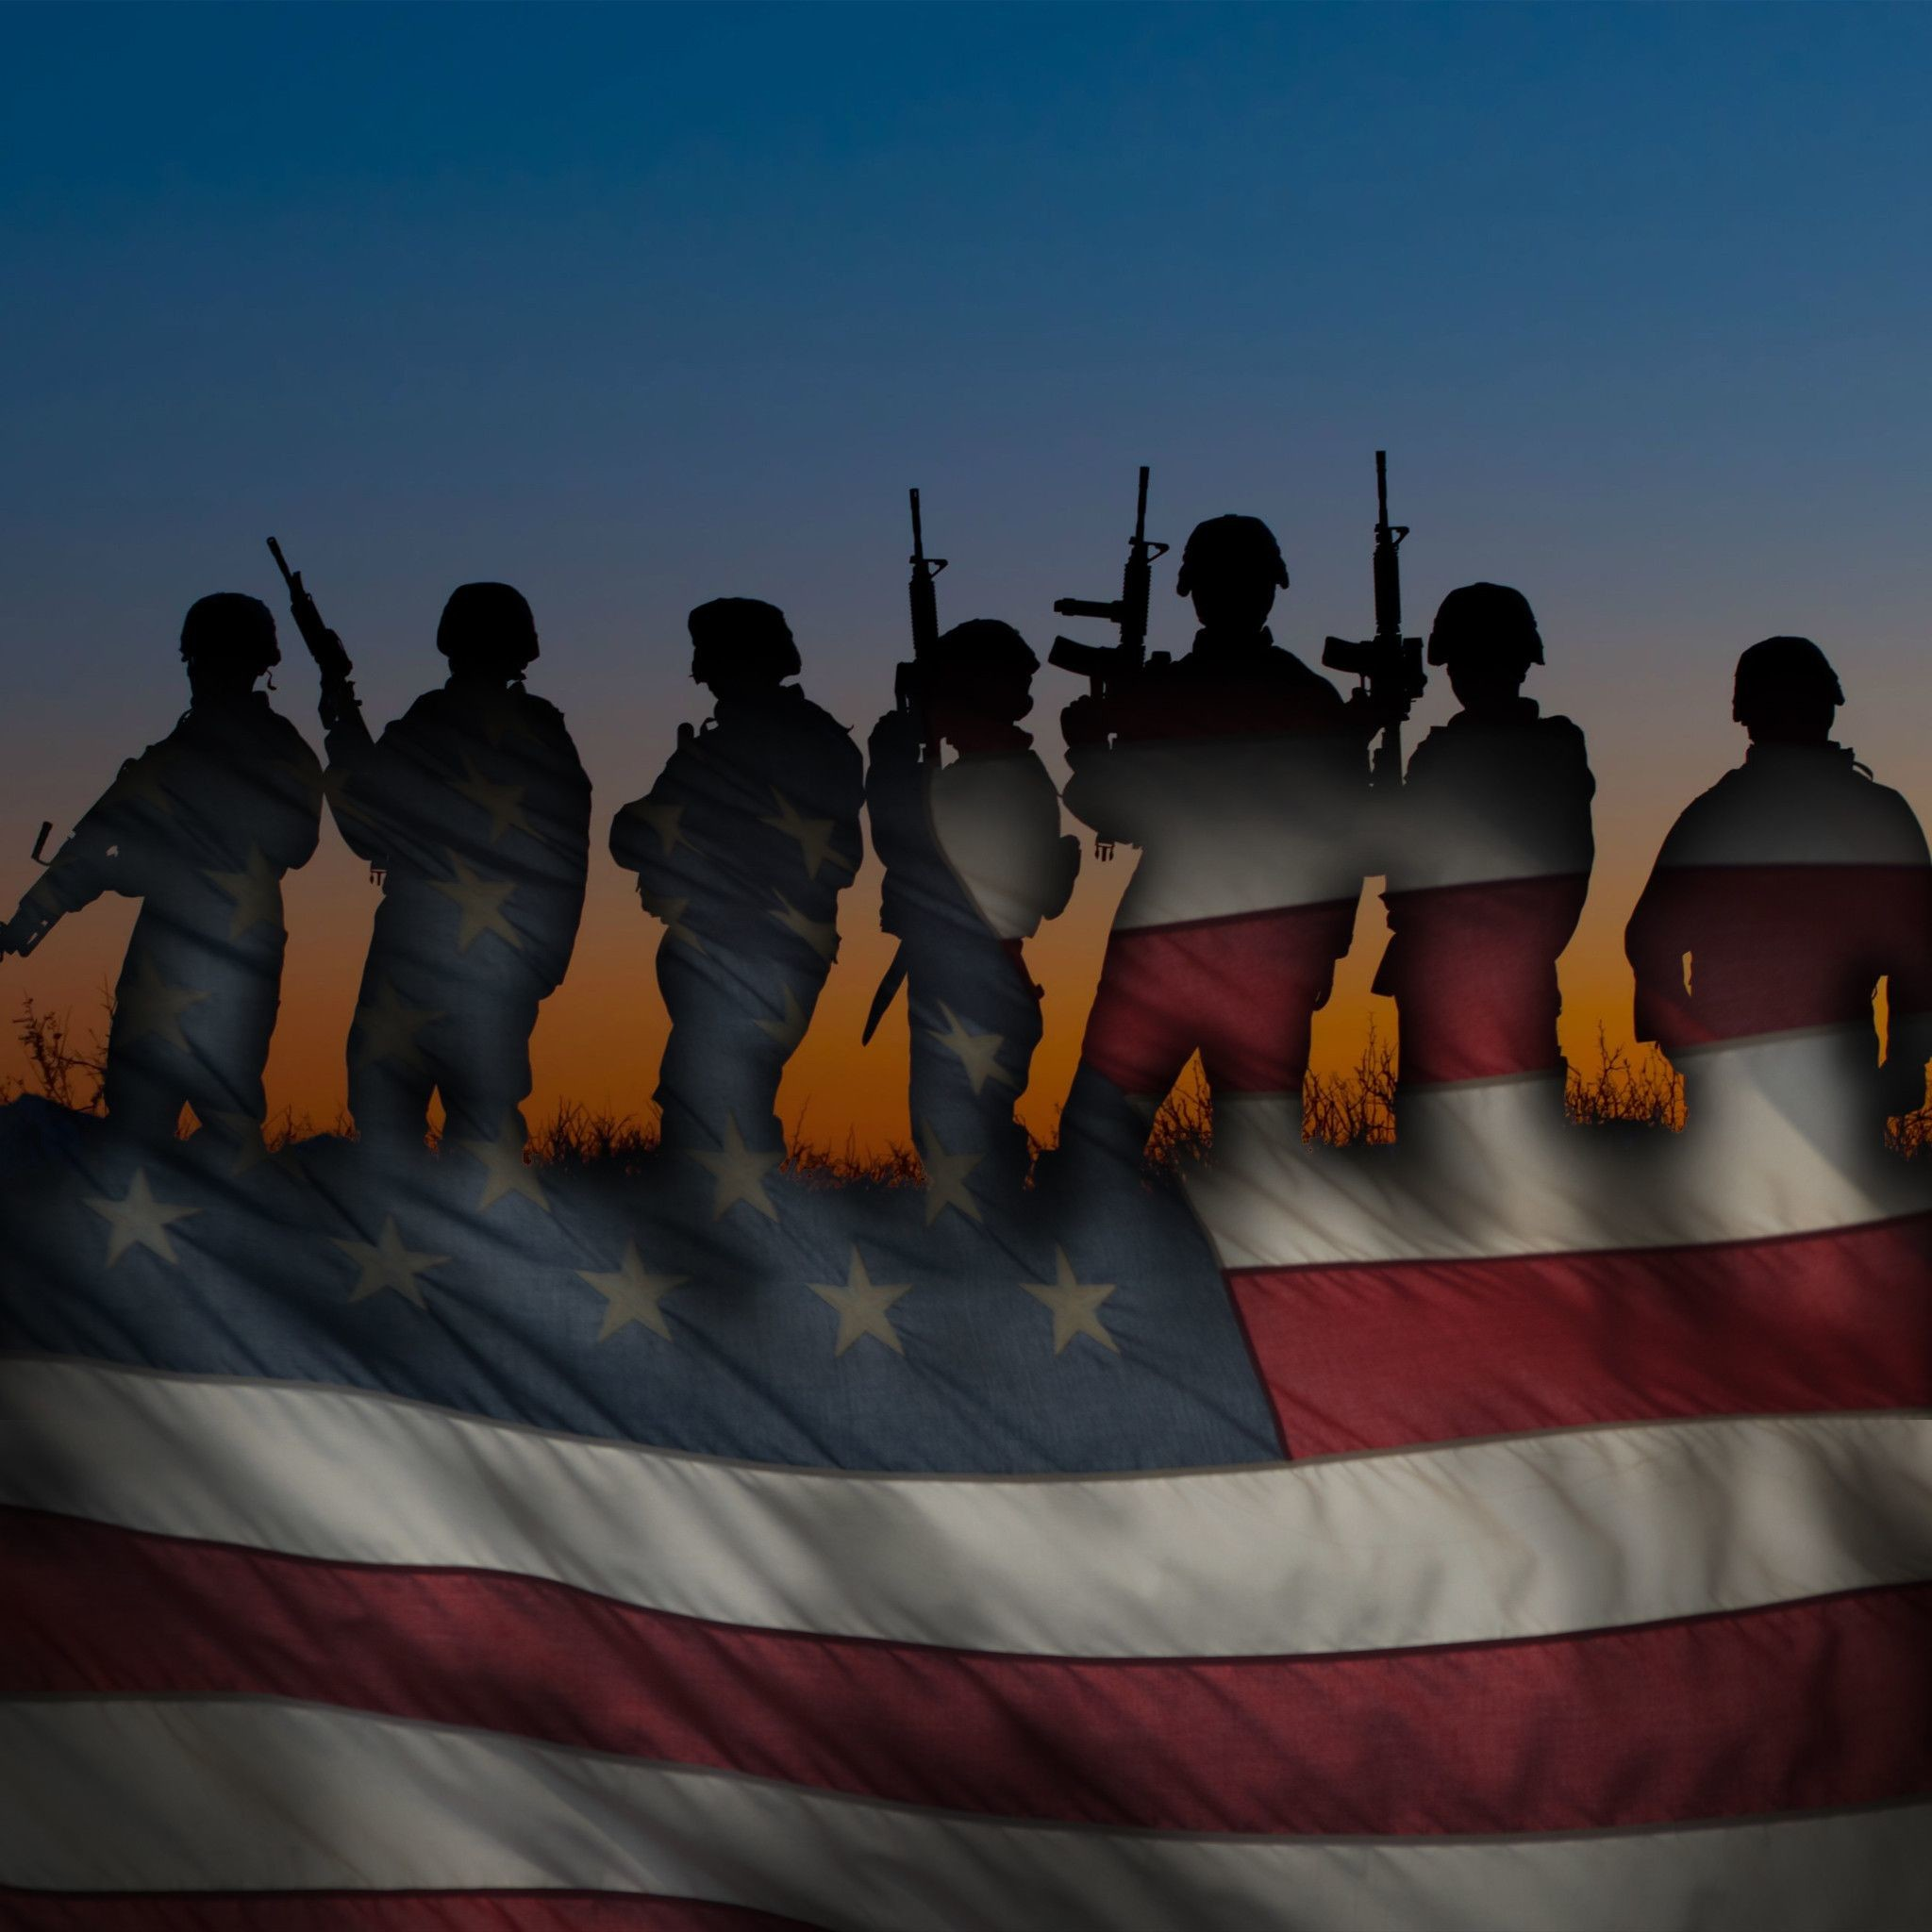 Us military backgrounds 55 images - Military wallpaper army ...